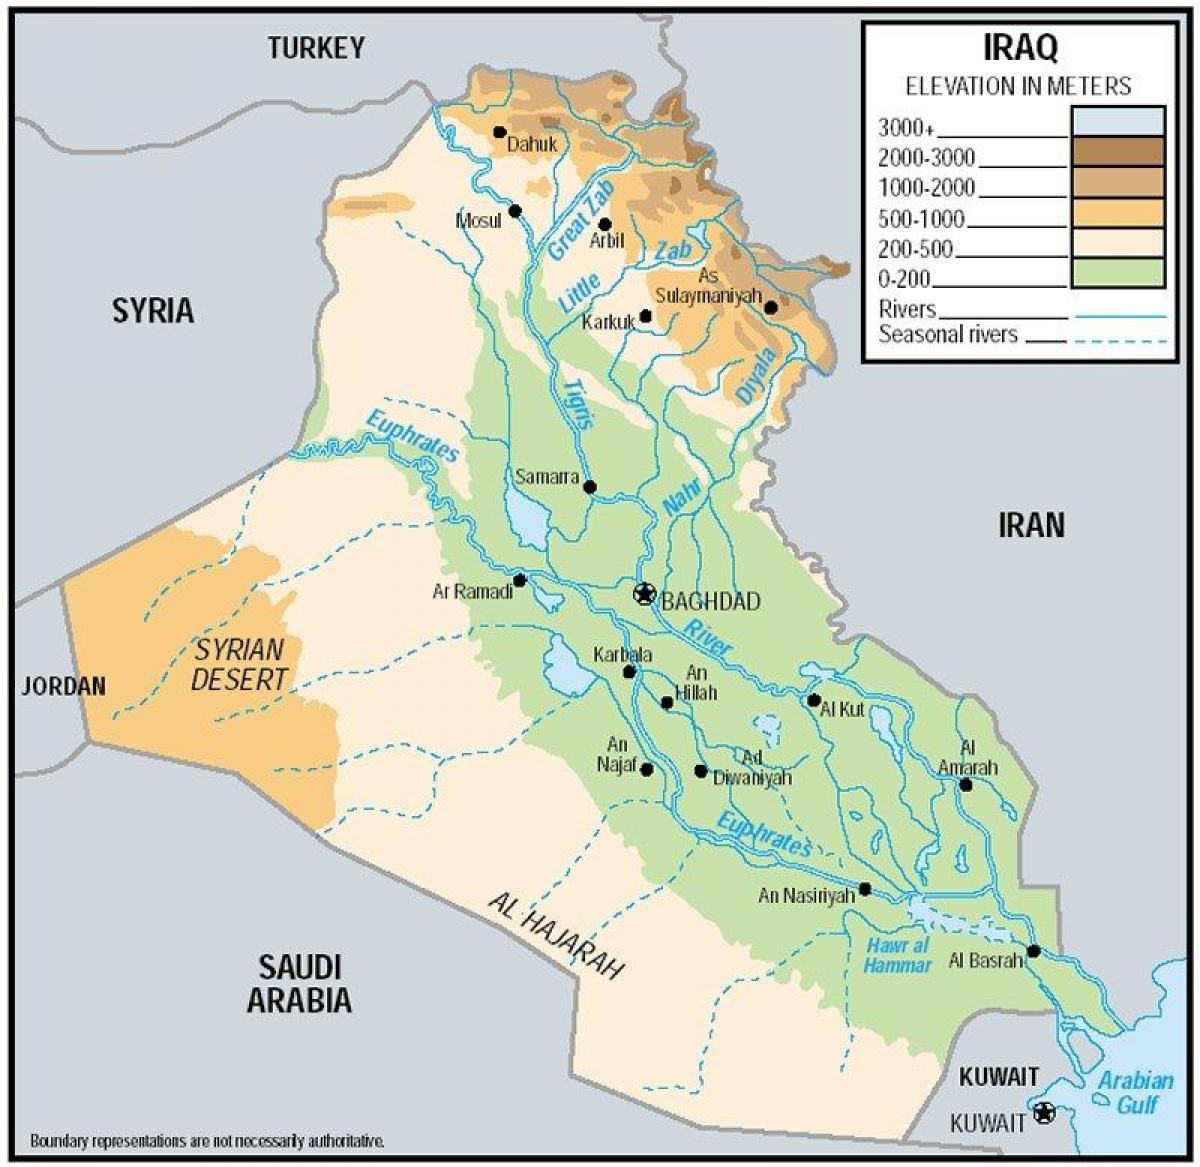 Iraq Elevation Map Map Of Iraq Elevation Western Asia Asia